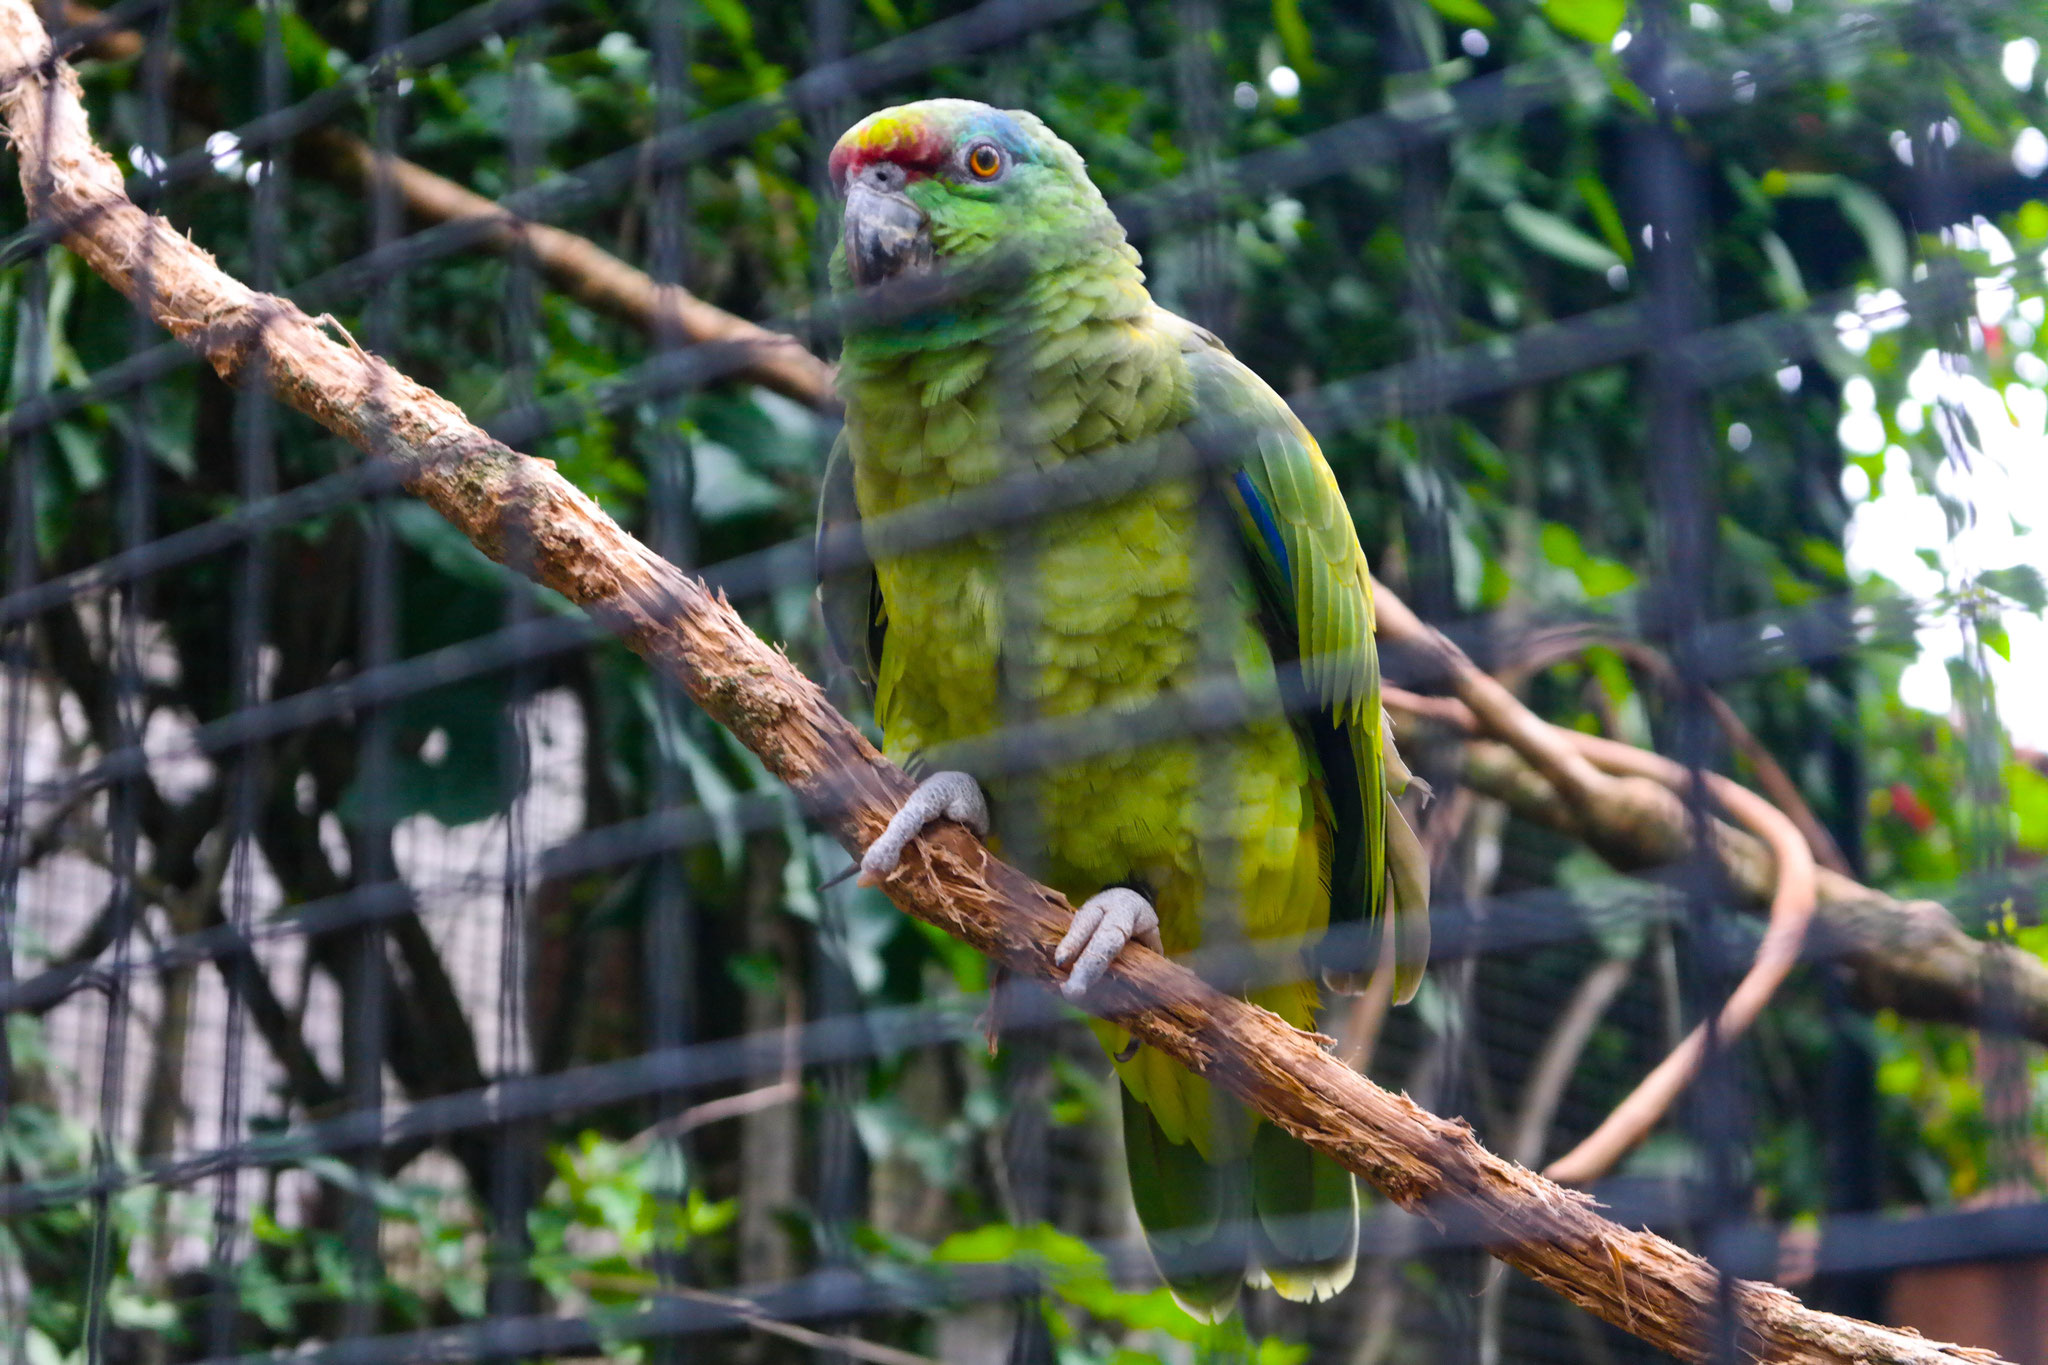 A green parrot sitting on a branch close to the grid of its enclosure.